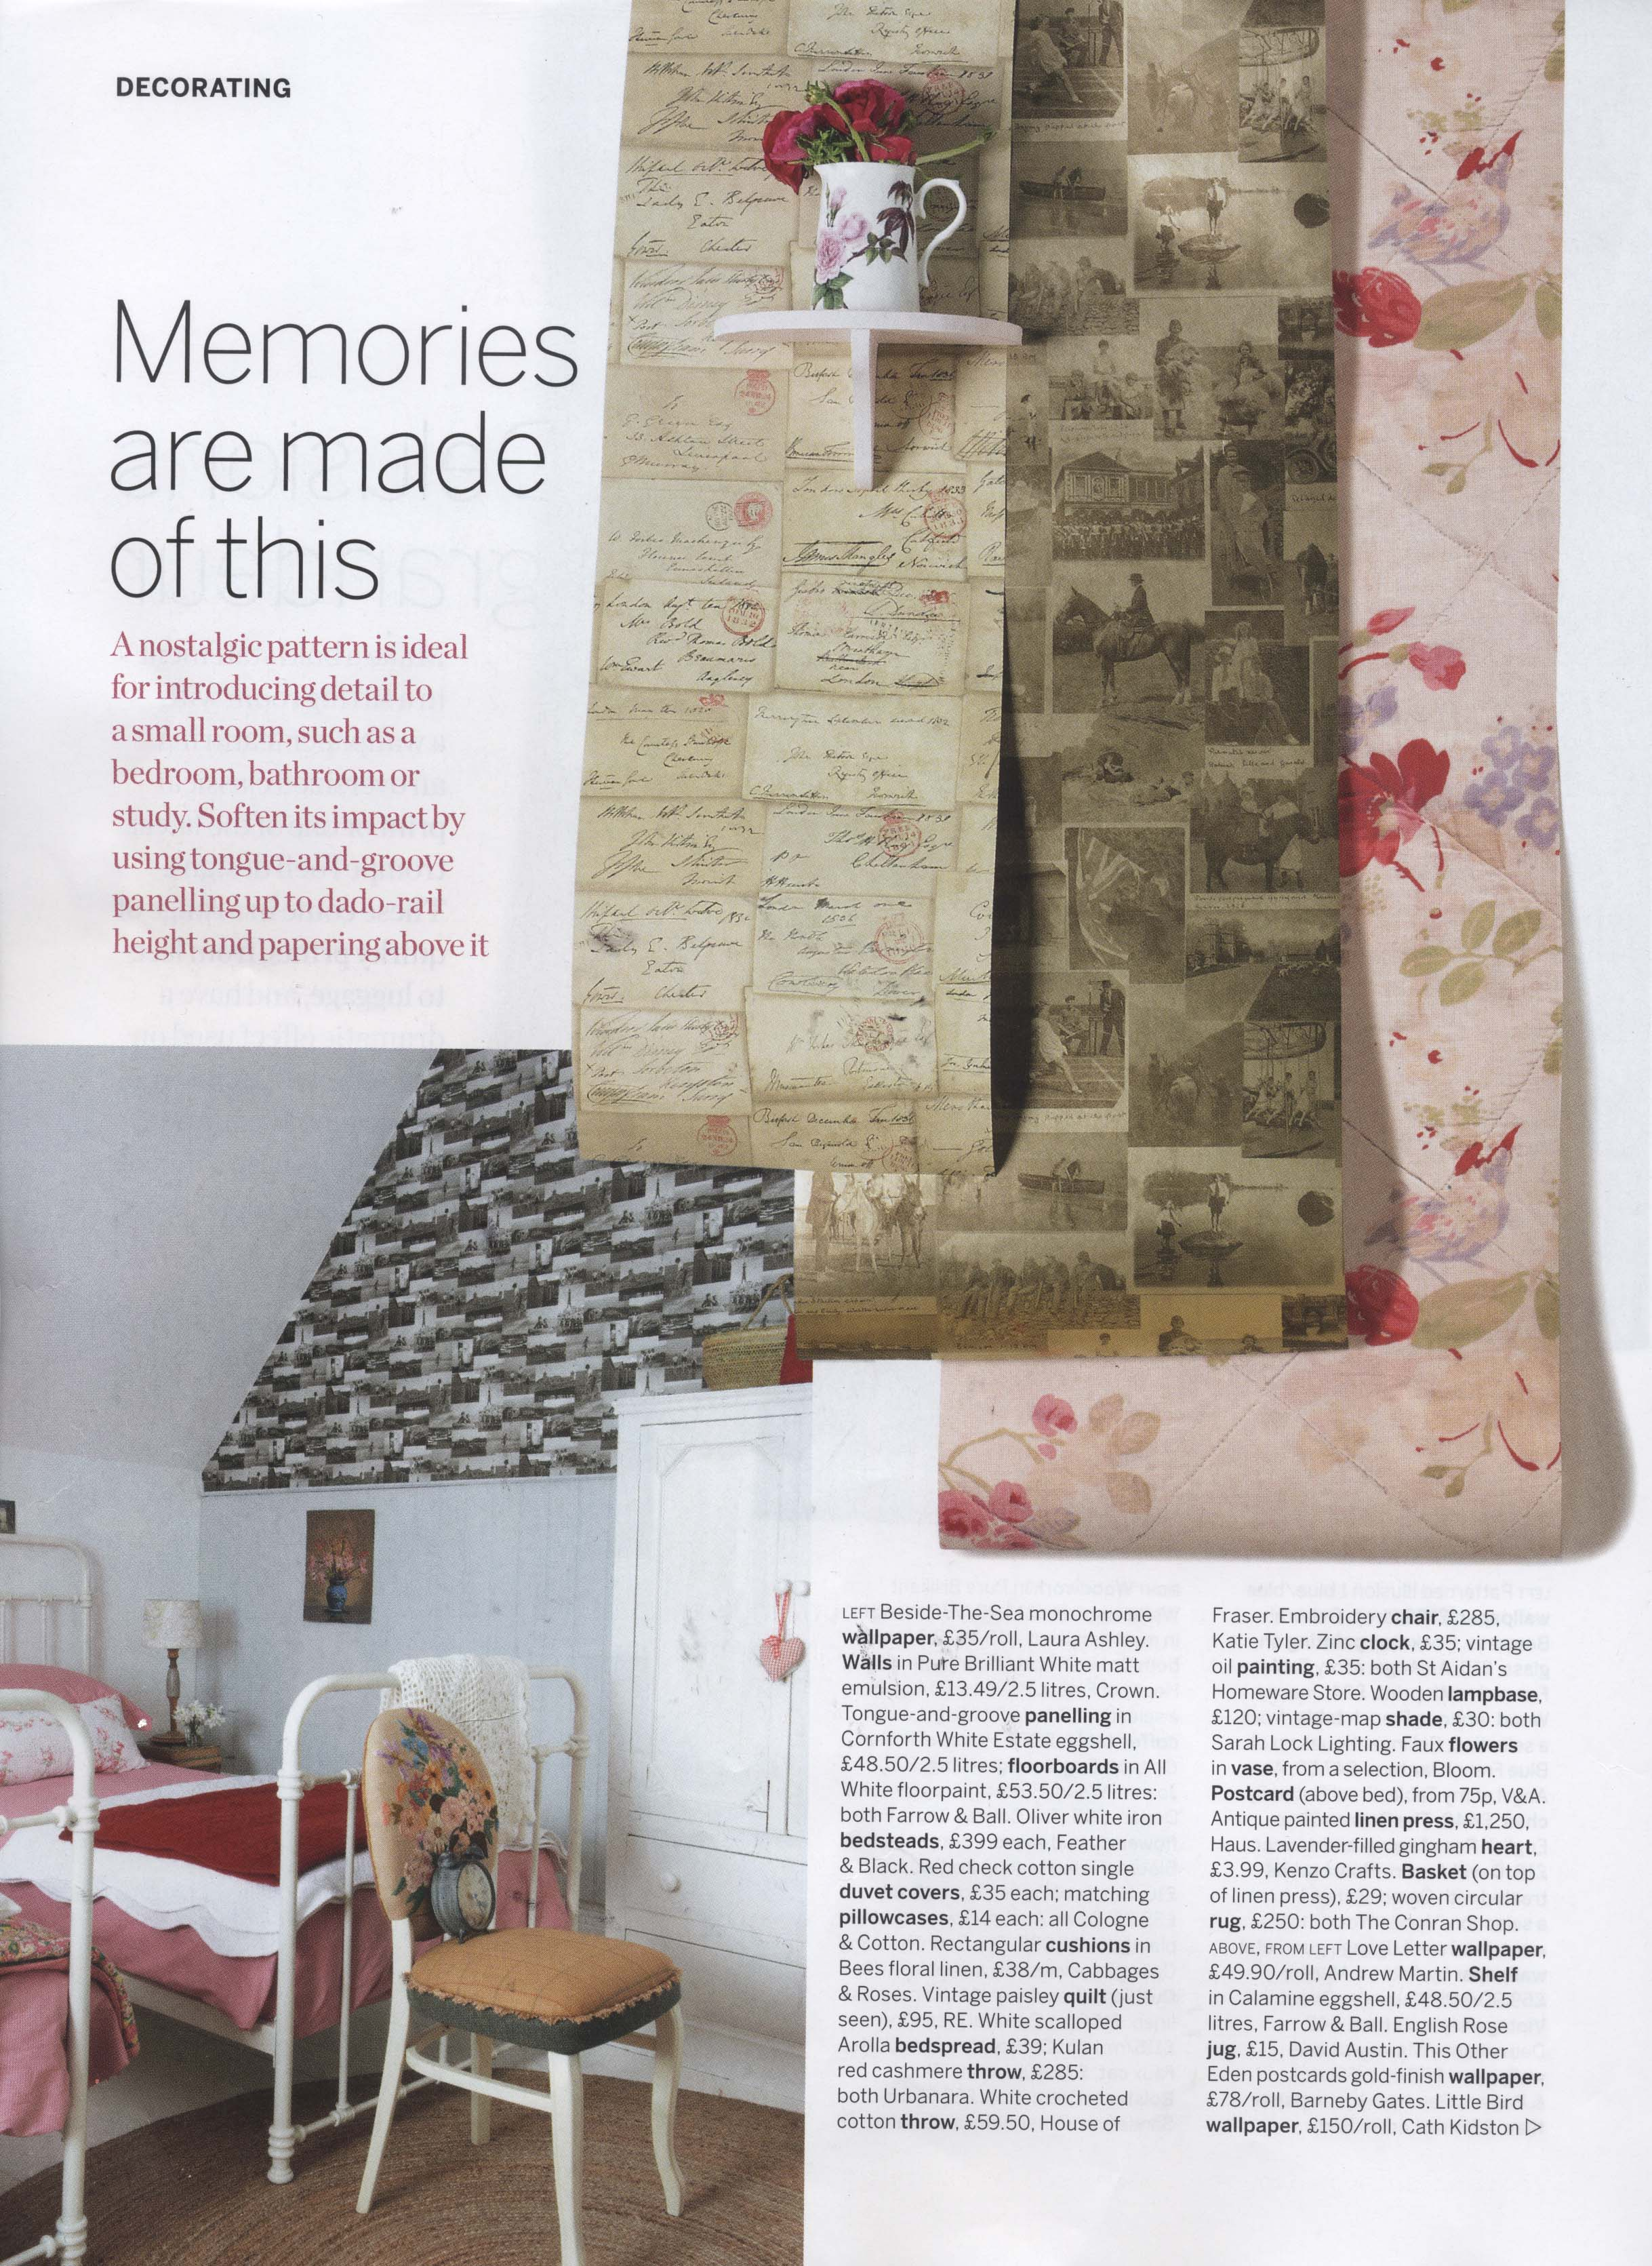 Country Living - April 2013 - Article